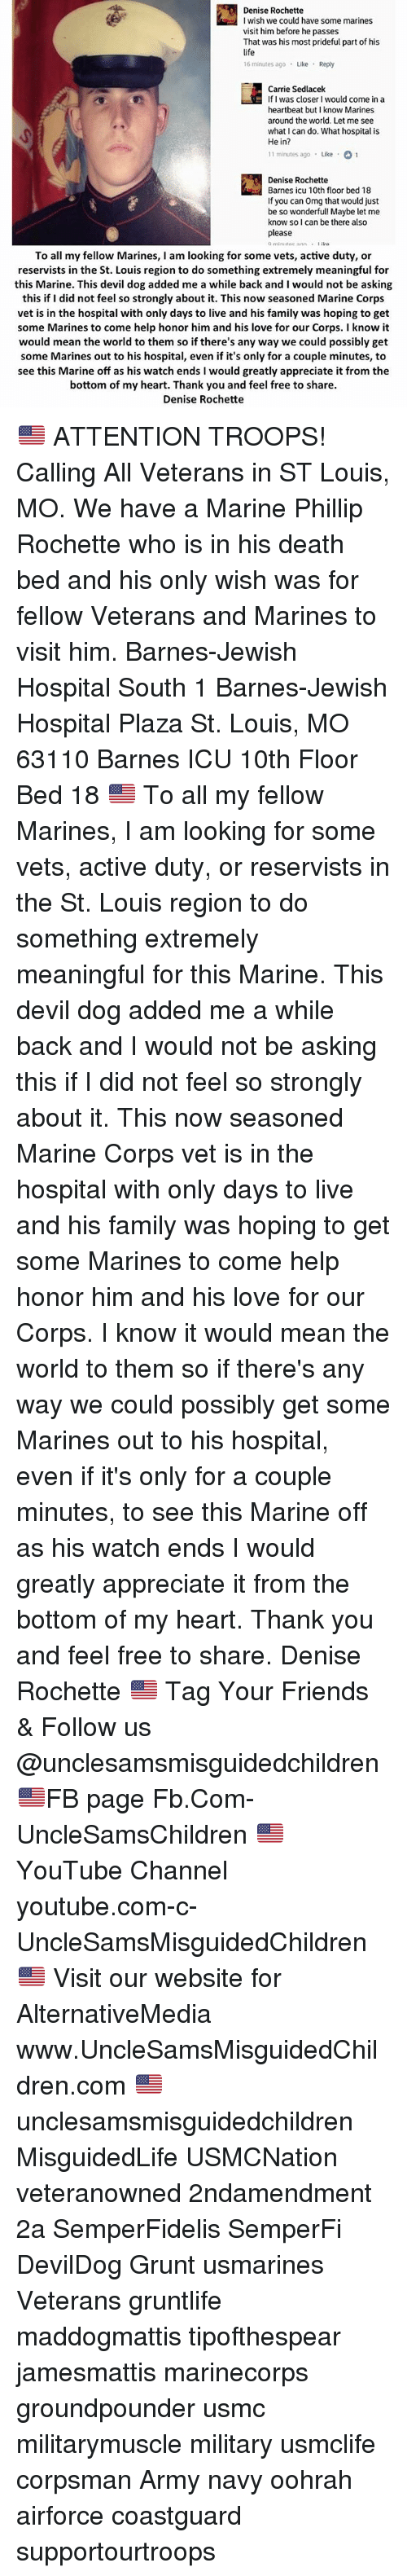 Family, Friends, and Life: Denise Rochette  I wish we could have some marines  visit him before he passes  That was his most prideful part of his  life  16 minutes ago Like Reply  Carrie Sedlacek  If I was closer I would come in a  heartbeat but I know Marines  around the world. Let me see  what I can do. What hospital is  He in?  11 minutes ago Like 1  Denise Rochette  Barnes icu 10th floor bed 18  If you can Omg that would just  be so wonderful! Maybe let me  know so l can be there also  please  To all my fellow Marines, I am looking for some vets, active duty, or  reservists in the St. Louis region to do something extremely meaningful for  this Marine. This devil dog added me a while back and I would not be asking  this if I did not feel so strongly about it. This now seasoned Marine Corps  vet is in the hospital with only days to live and his family was hoping to get  some Marines to come help honor him and his love for our Corps. I know it  would mean the world to them so if there's any way we could possibly get  some Marines out to his hospital, even if it's only for a couple minutes, to  see this Marine off as his watch ends I would greatly appreciate it from the  bottom of my heart. Thank you and feel free to share.  Denise Rochette 🇺🇸 ATTENTION TROOPS! Calling All Veterans in ST Louis, MO. We have a Marine Phillip Rochette who is in his death bed and his only wish was for fellow Veterans and Marines to visit him. Barnes-Jewish Hospital South 1 Barnes-Jewish Hospital Plaza St. Louis, MO 63110 Barnes ICU 10th Floor Bed 18 🇺🇸 To all my fellow Marines, I am looking for some vets, active duty, or reservists in the St. Louis region to do something extremely meaningful for this Marine. This devil dog added me a while back and I would not be asking this if I did not feel so strongly about it. This now seasoned Marine Corps vet is in the hospital with only days to live and his family was hoping to get some Marines to come help honor him and his love for our Corps. I know it would mean the world to them so if there's any way we could possibly get some Marines out to his hospital, even if it's only for a couple minutes, to see this Marine off as his watch ends I would greatly appreciate it from the bottom of my heart. Thank you and feel free to share. Denise Rochette 🇺🇸 Tag Your Friends & Follow us @unclesamsmisguidedchildren 🇺🇸FB page Fb.Com-UncleSamsChildren 🇺🇸YouTube Channel youtube.com-c-UncleSamsMisguidedChildren 🇺🇸 Visit our website for AlternativeMedia www.UncleSamsMisguidedChildren.com 🇺🇸 unclesamsmisguidedchildren MisguidedLife USMCNation veteranowned 2ndamendment 2a SemperFidelis SemperFi DevilDog Grunt usmarines Veterans gruntlife maddogmattis tipofthespear jamesmattis marinecorps groundpounder usmc militarymuscle military usmclife corpsman Army navy oohrah airforce coastguard supportourtroops